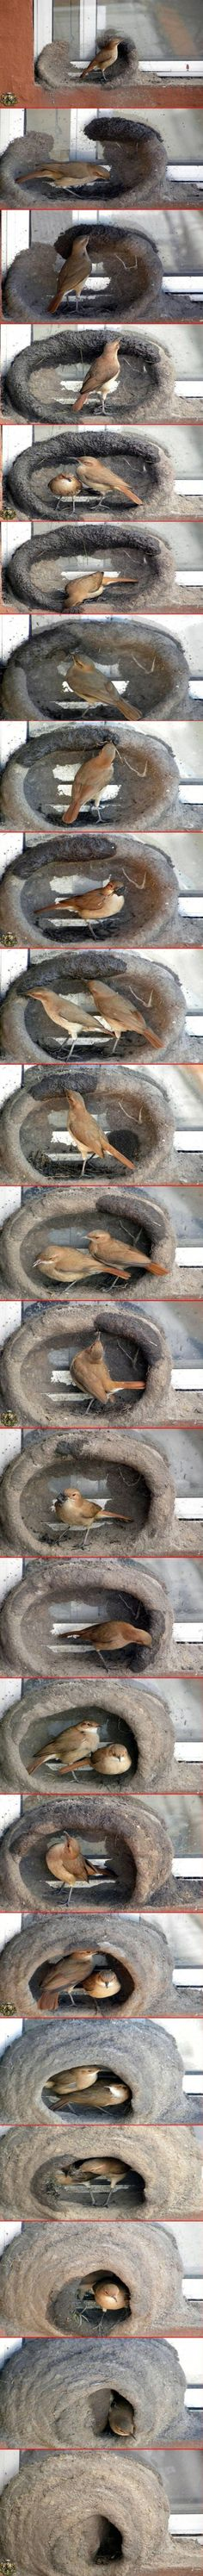 """El hornero (meaning """"oven maker""""/ """"baker"""" in Spanish) or  Furnarius can be found in Brasil, Uruguay, Paraguay, Bolivia and Argentina. The pair builds a nest made of mud in a shape similar to the old mud ovens. This wonderful sequence was photographed by some very patient person. I have personally seen this birds making their nest when I traveled through South America."""